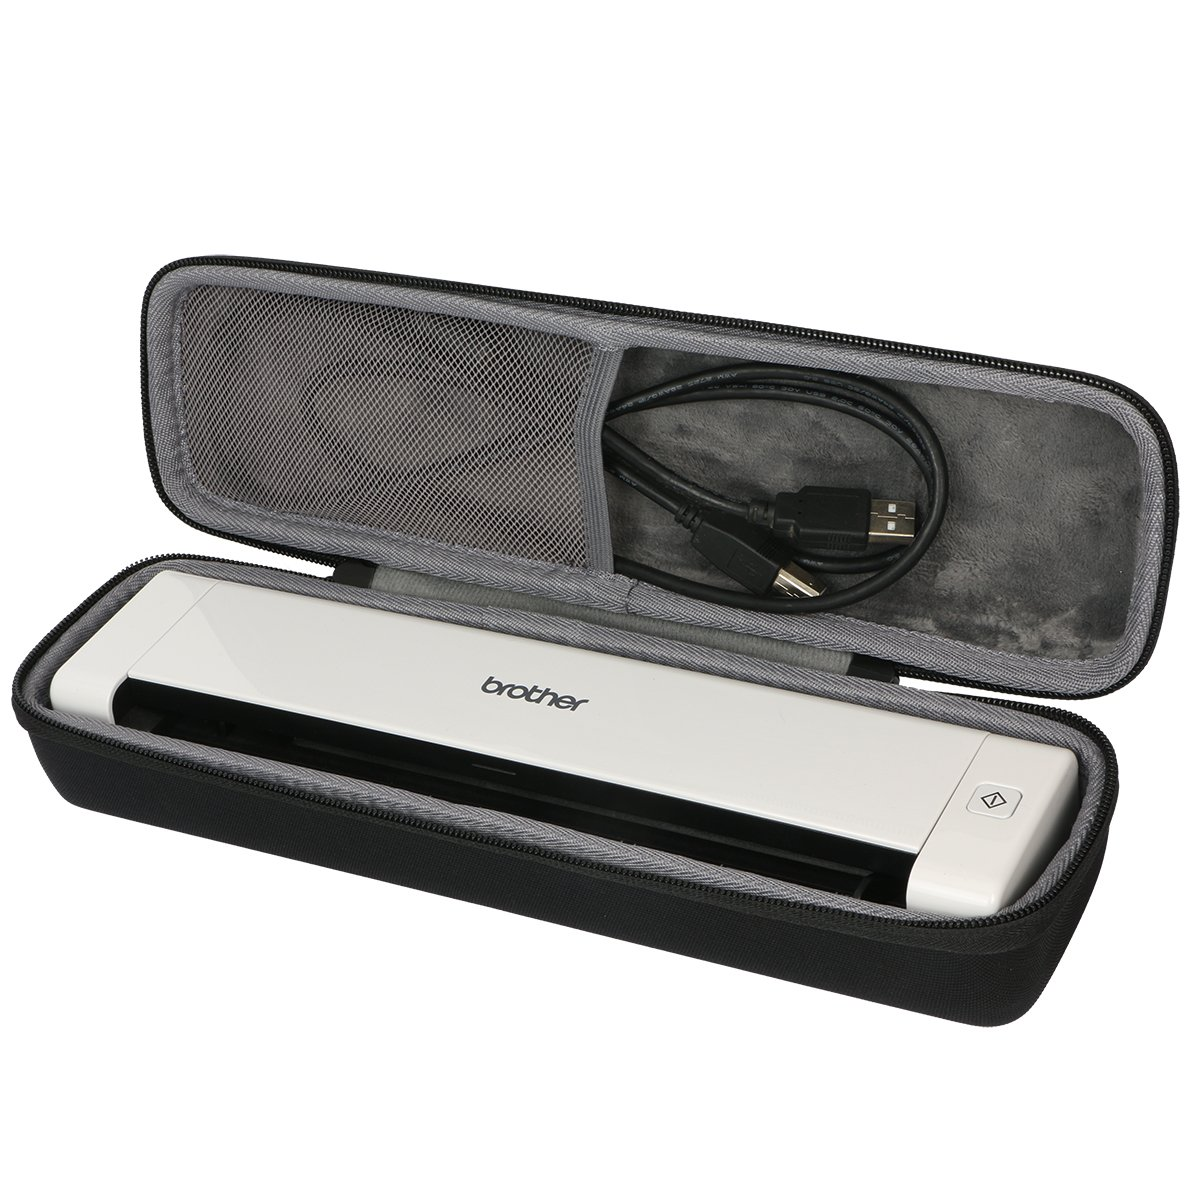 Hard Travel Case for Brother Mobile Color Page Scanner DS-720D by co2CREA by Co2Crea